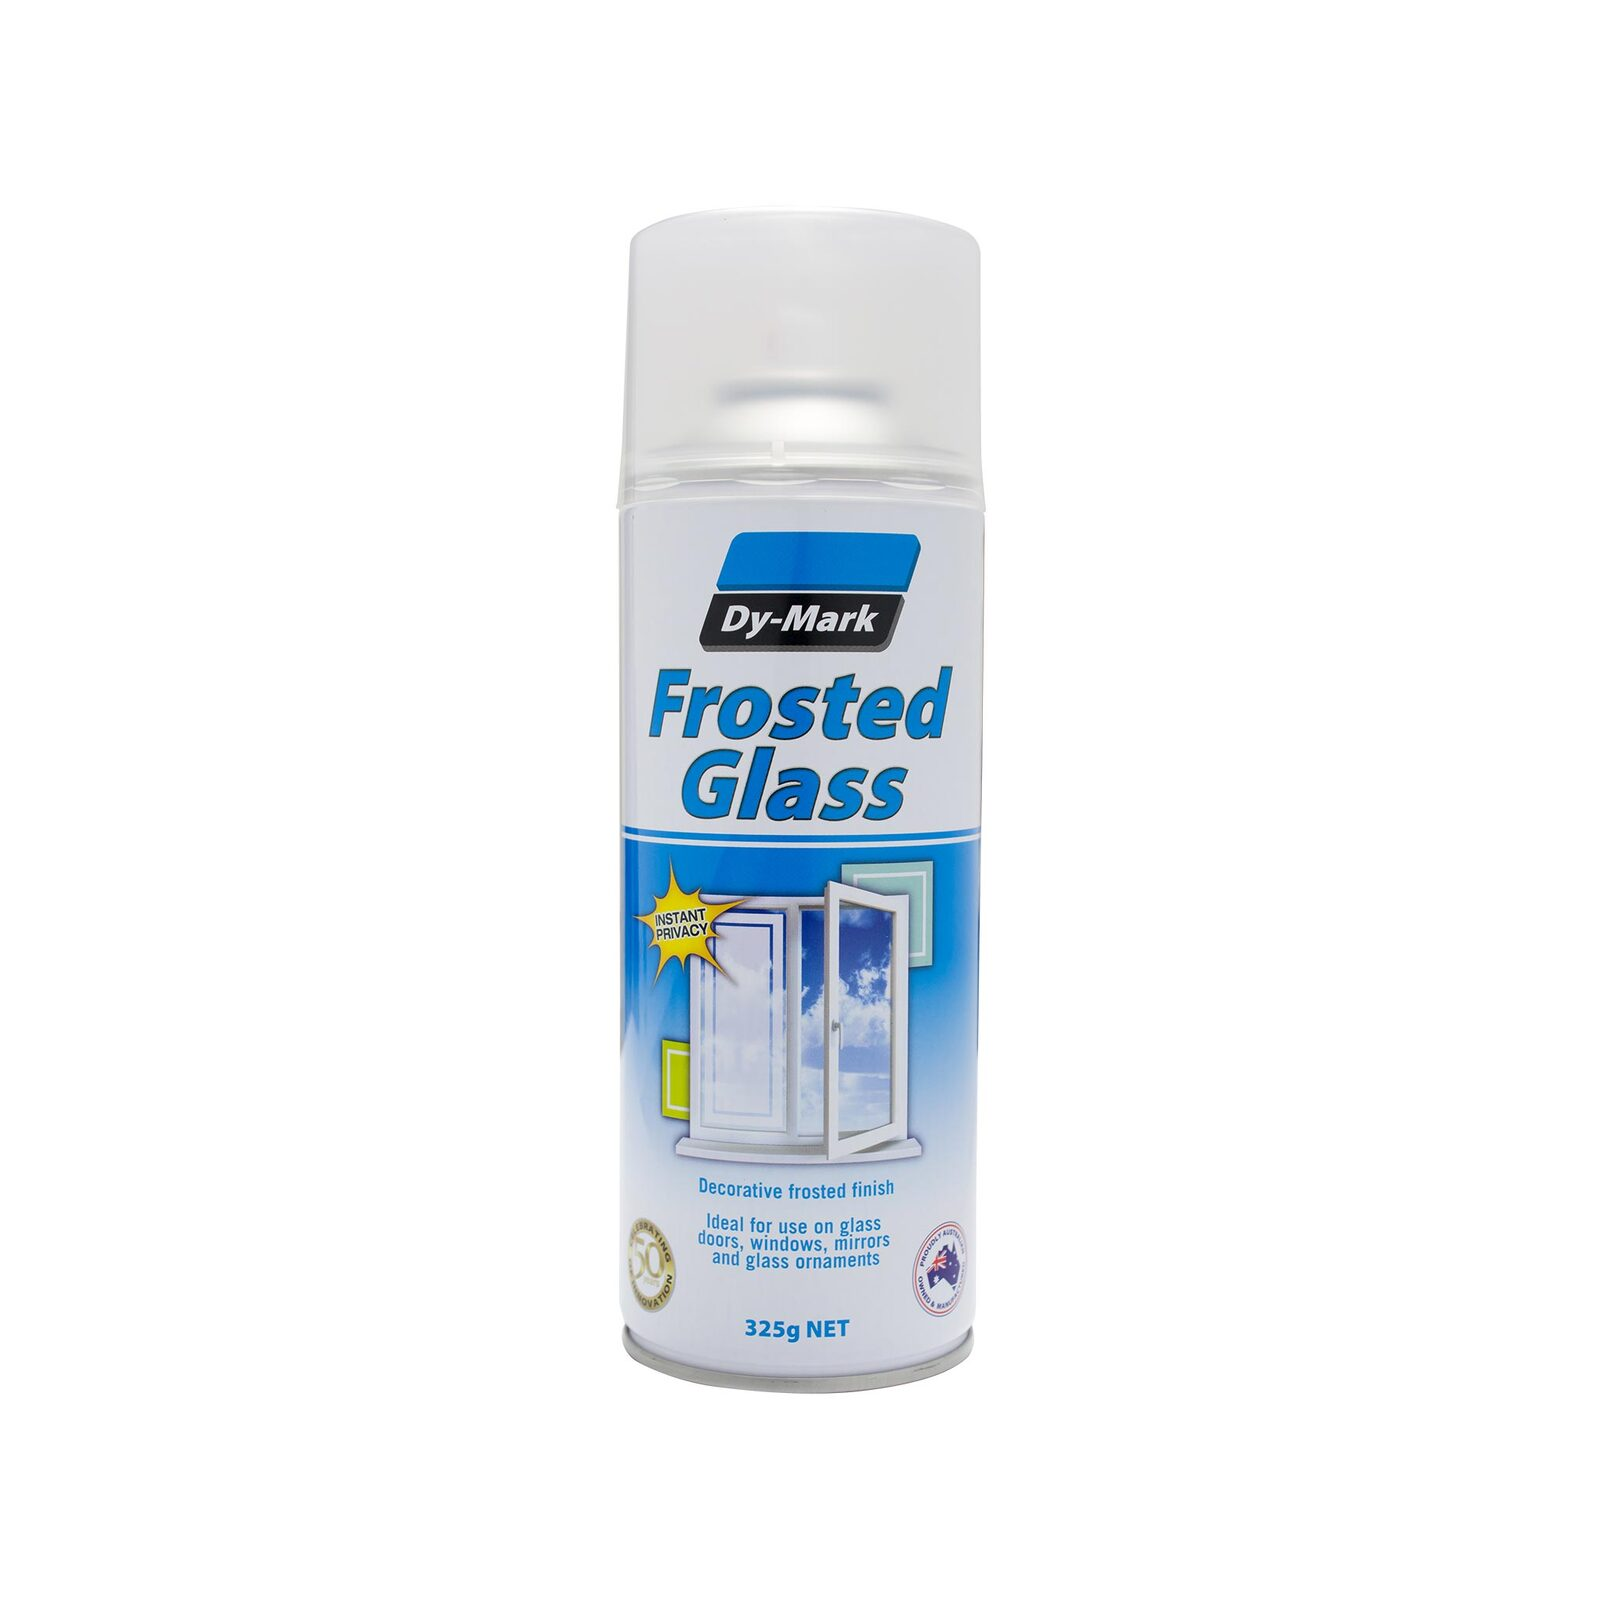 Dy-Mark 325g Frosted Glass Decorative Spray Paint